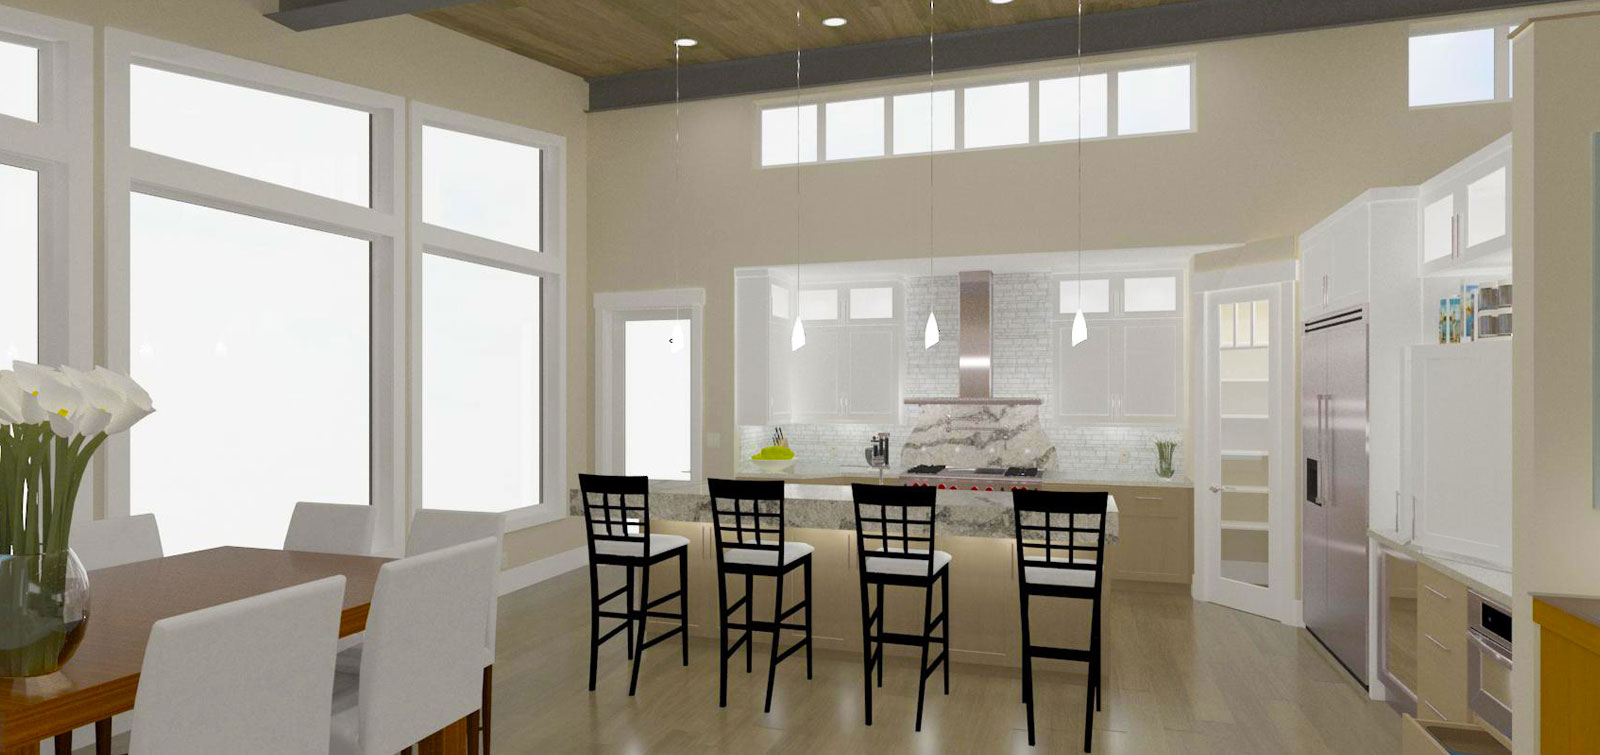 Interior software design in action split screen slider of realistic 3d rendering